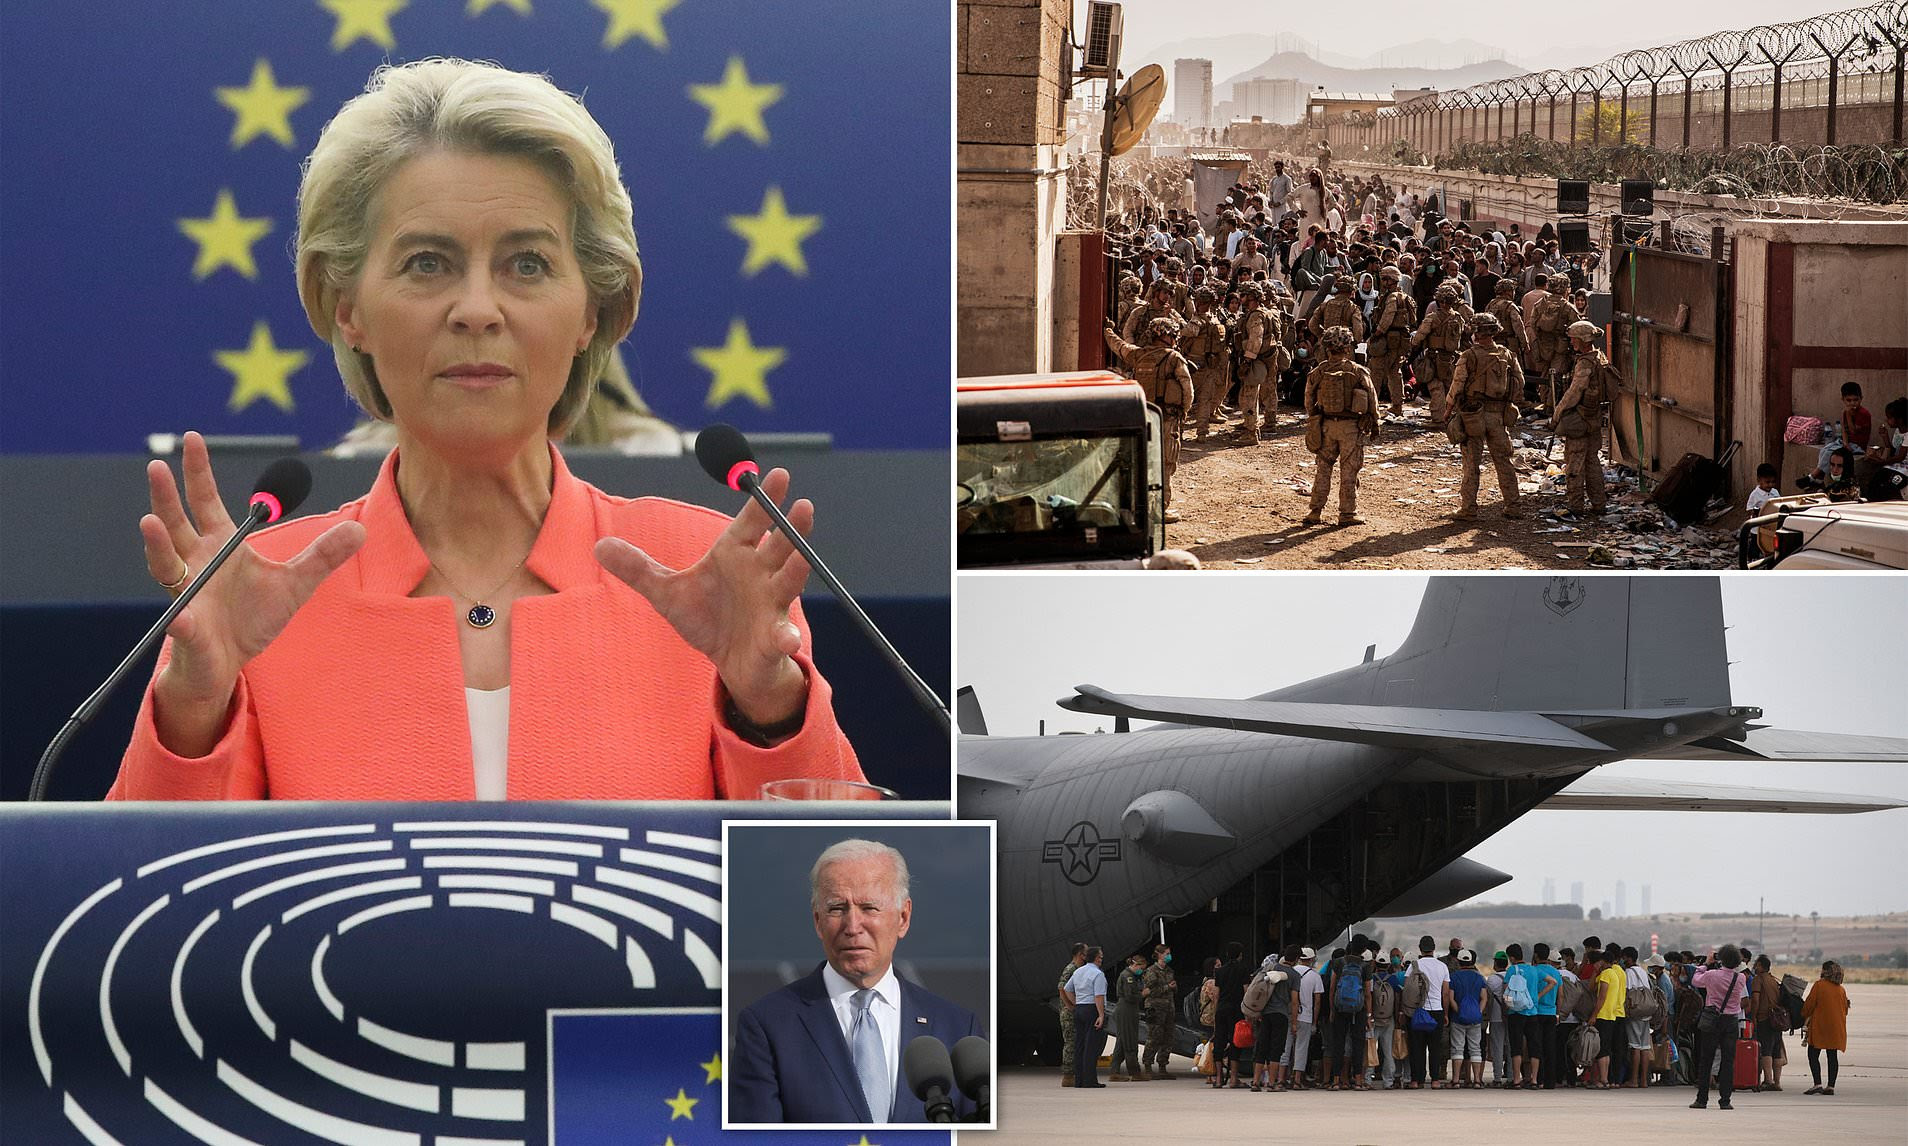 The EU should build its own military after being abandoned by US in Afghanistan says EU President